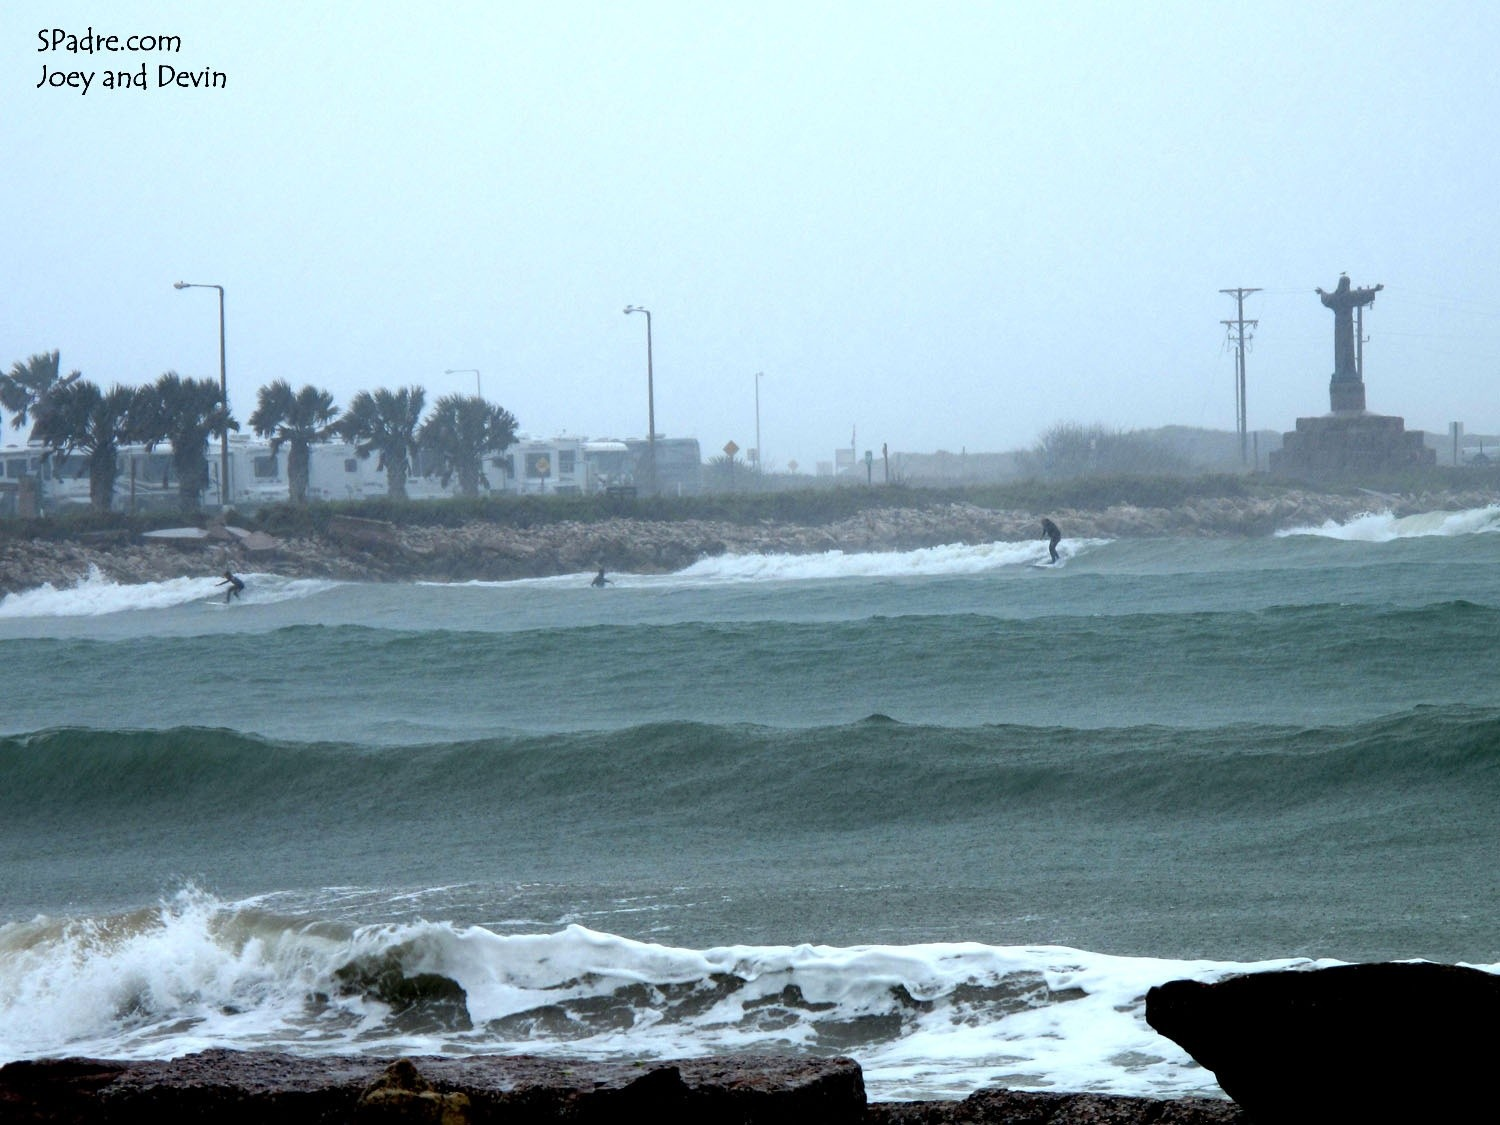 freestyle123's photo of South Padre Island